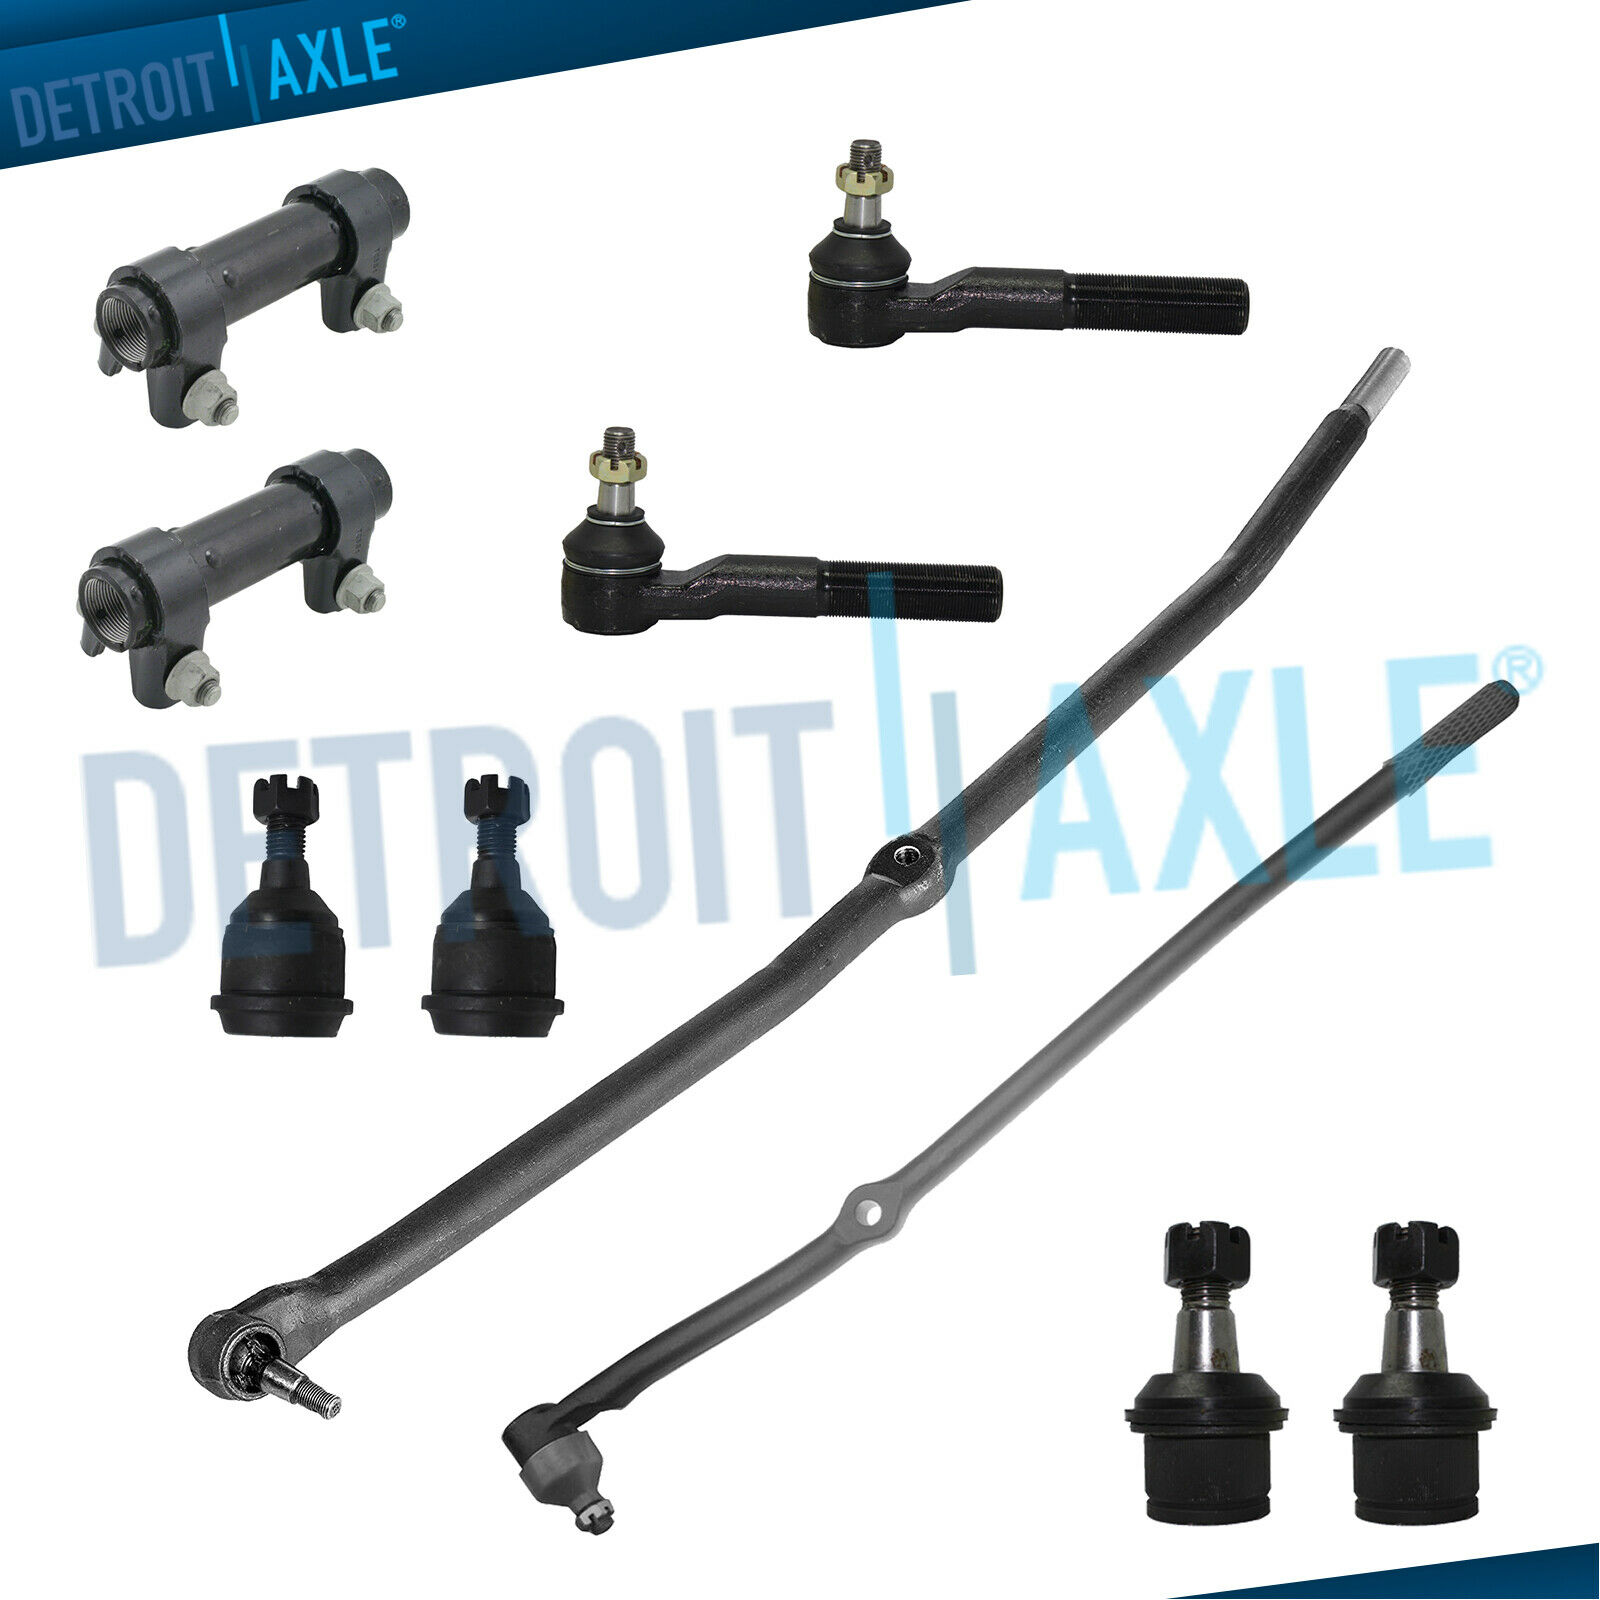 10pc Front Suspension Kit Tie Rods Ball Joint for 03-08 Dodge Ram 2500 3500 4x4